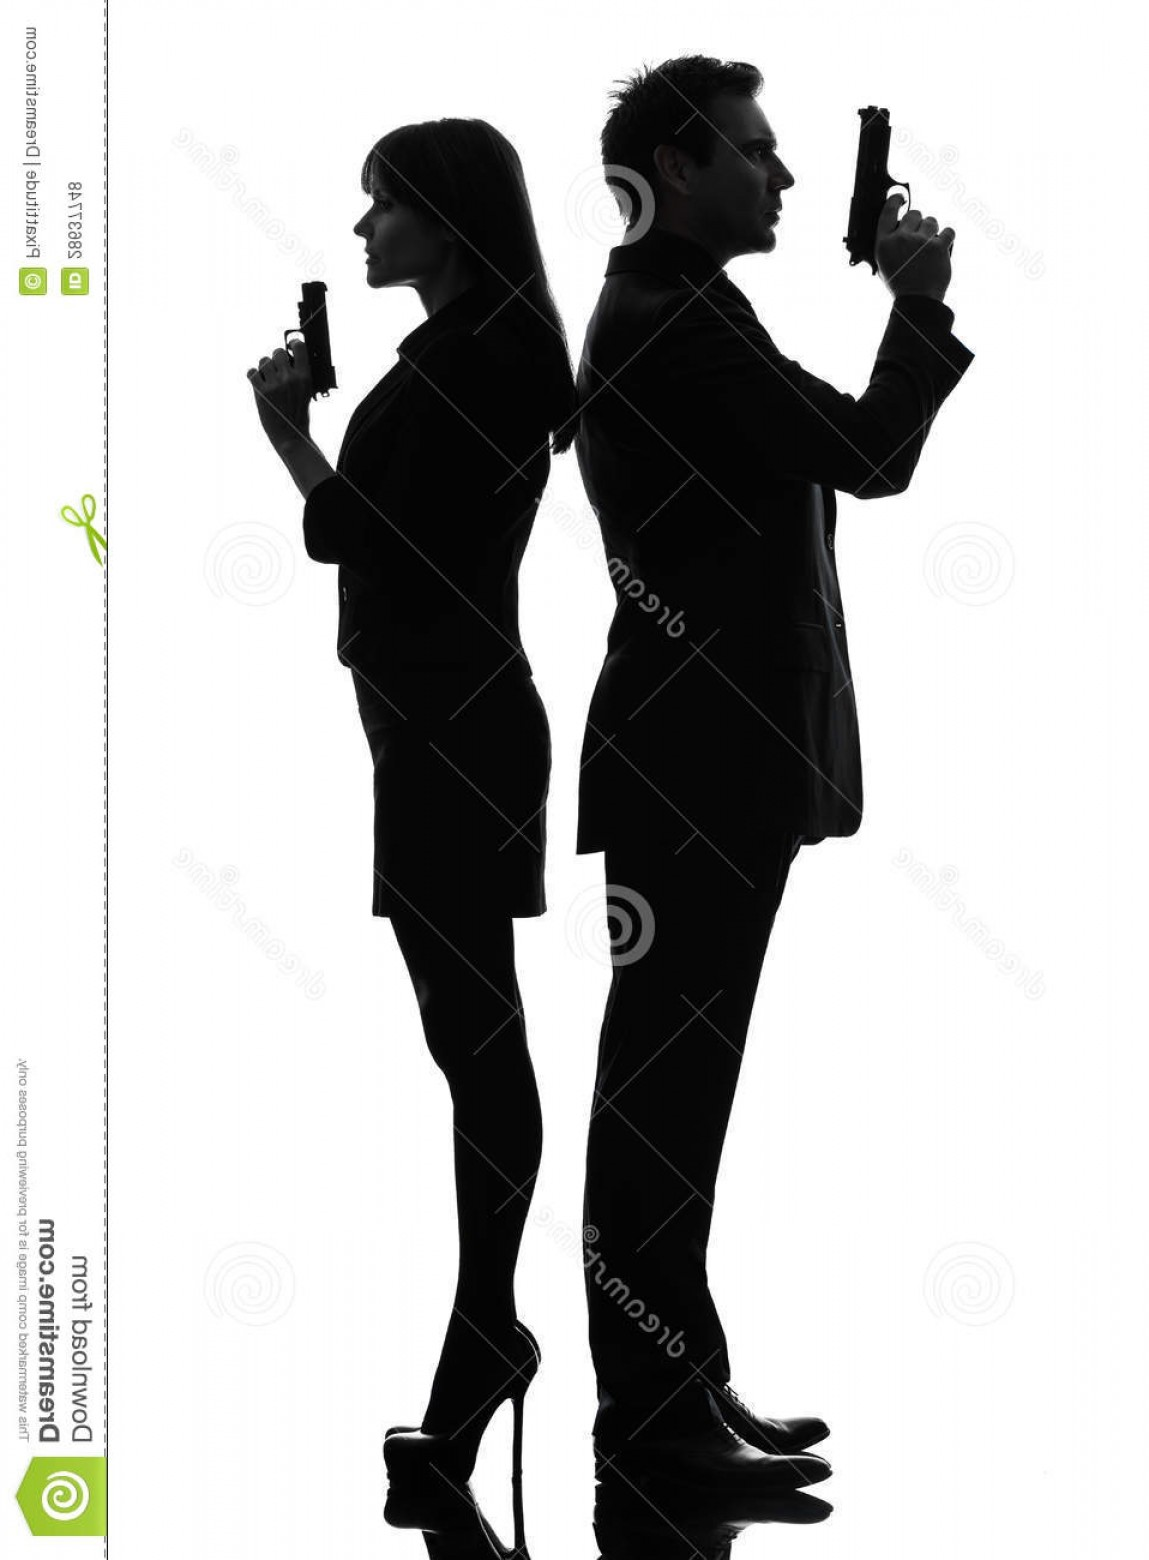 James Bond Silhouette Vector: Royalty Free Stock Photos Couple Woman Man Detective Secret Agent Criminal Silhouette Image